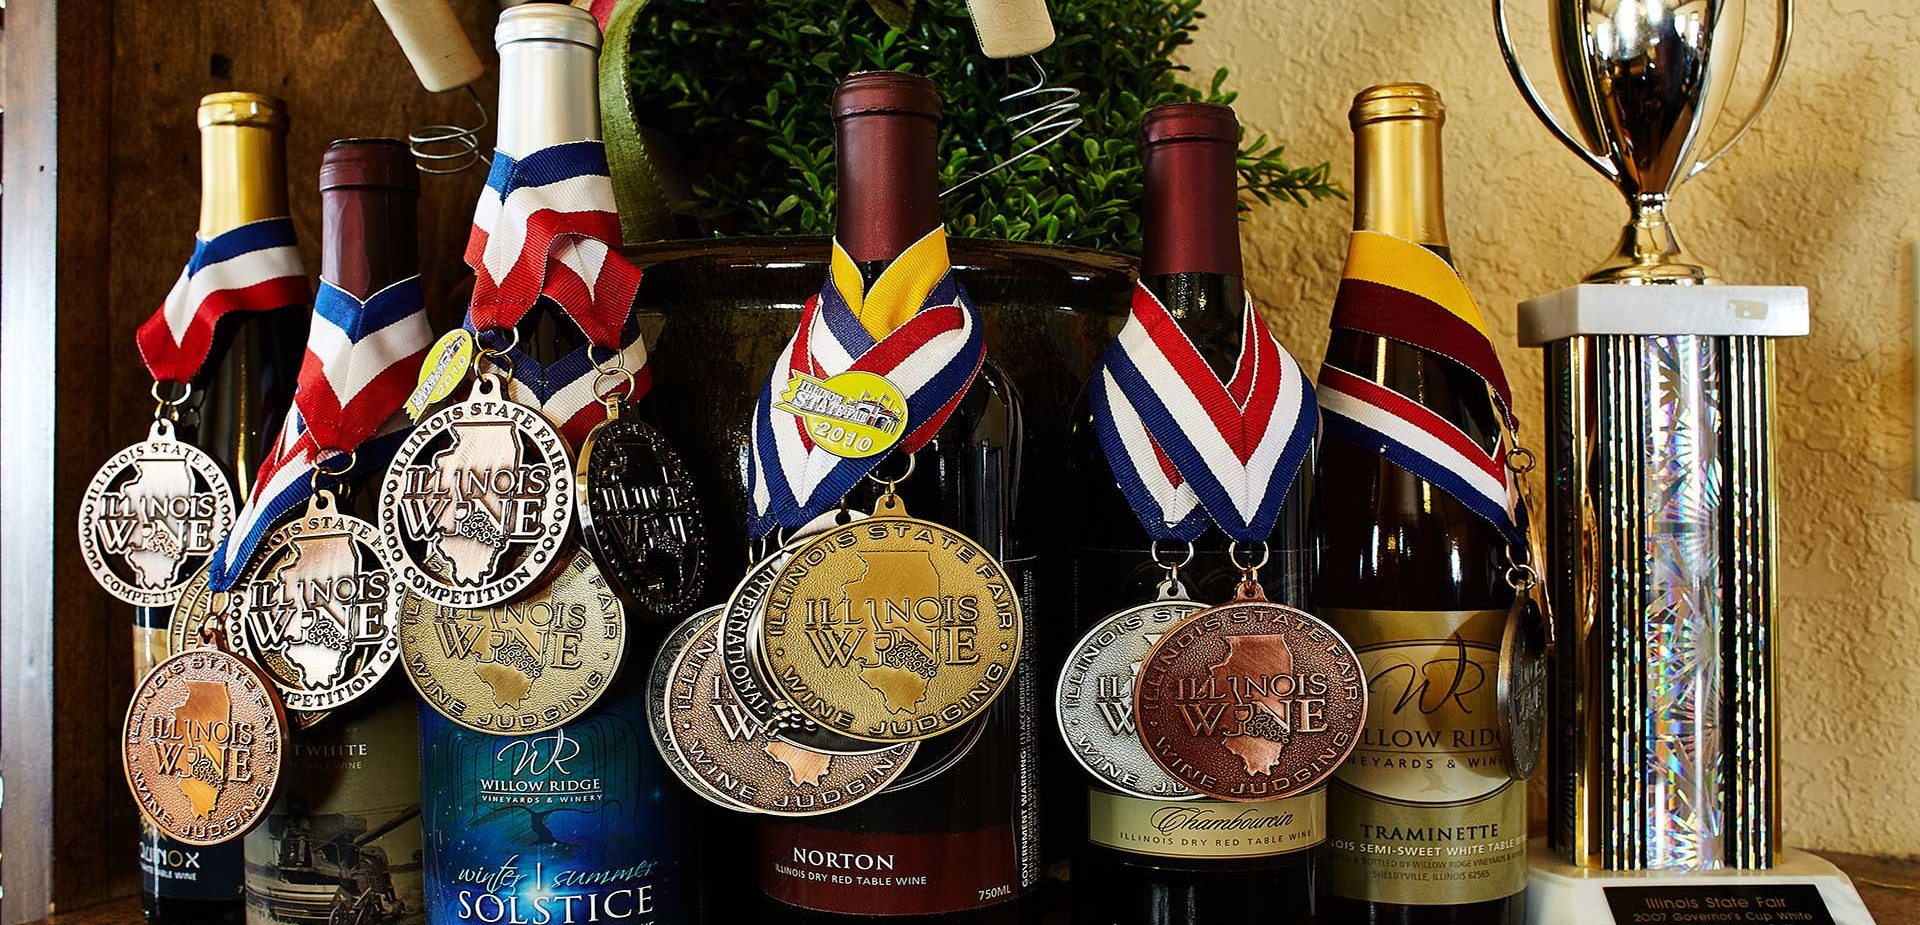 Willow Ridge Winery Award Winning Wine Illinois